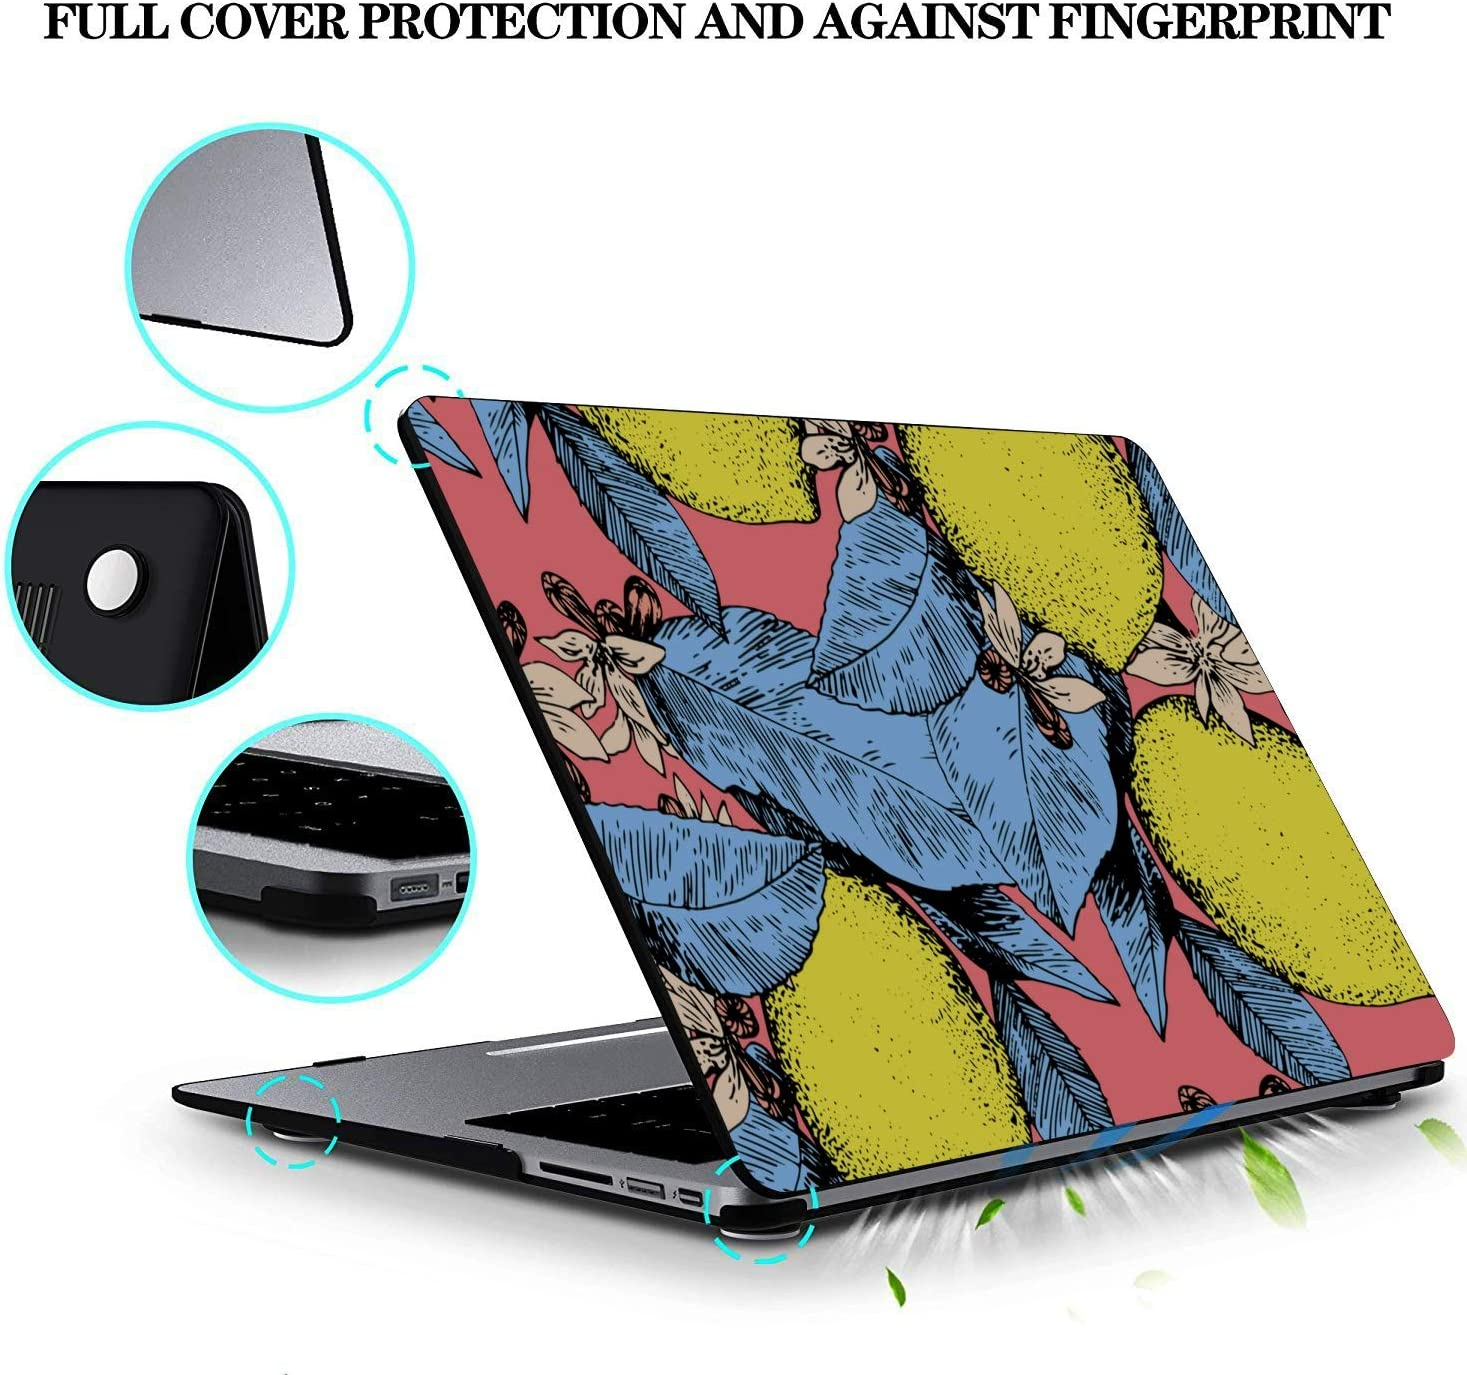 MacBook Air 13 Accessories Summer Fashion Flower Fruit Lemon Plastic Hard Shell Compatible Mac Air 11 Pro 13 15 MacBook Pro 13 Cases Protection for MacBook 2016-2019 Version